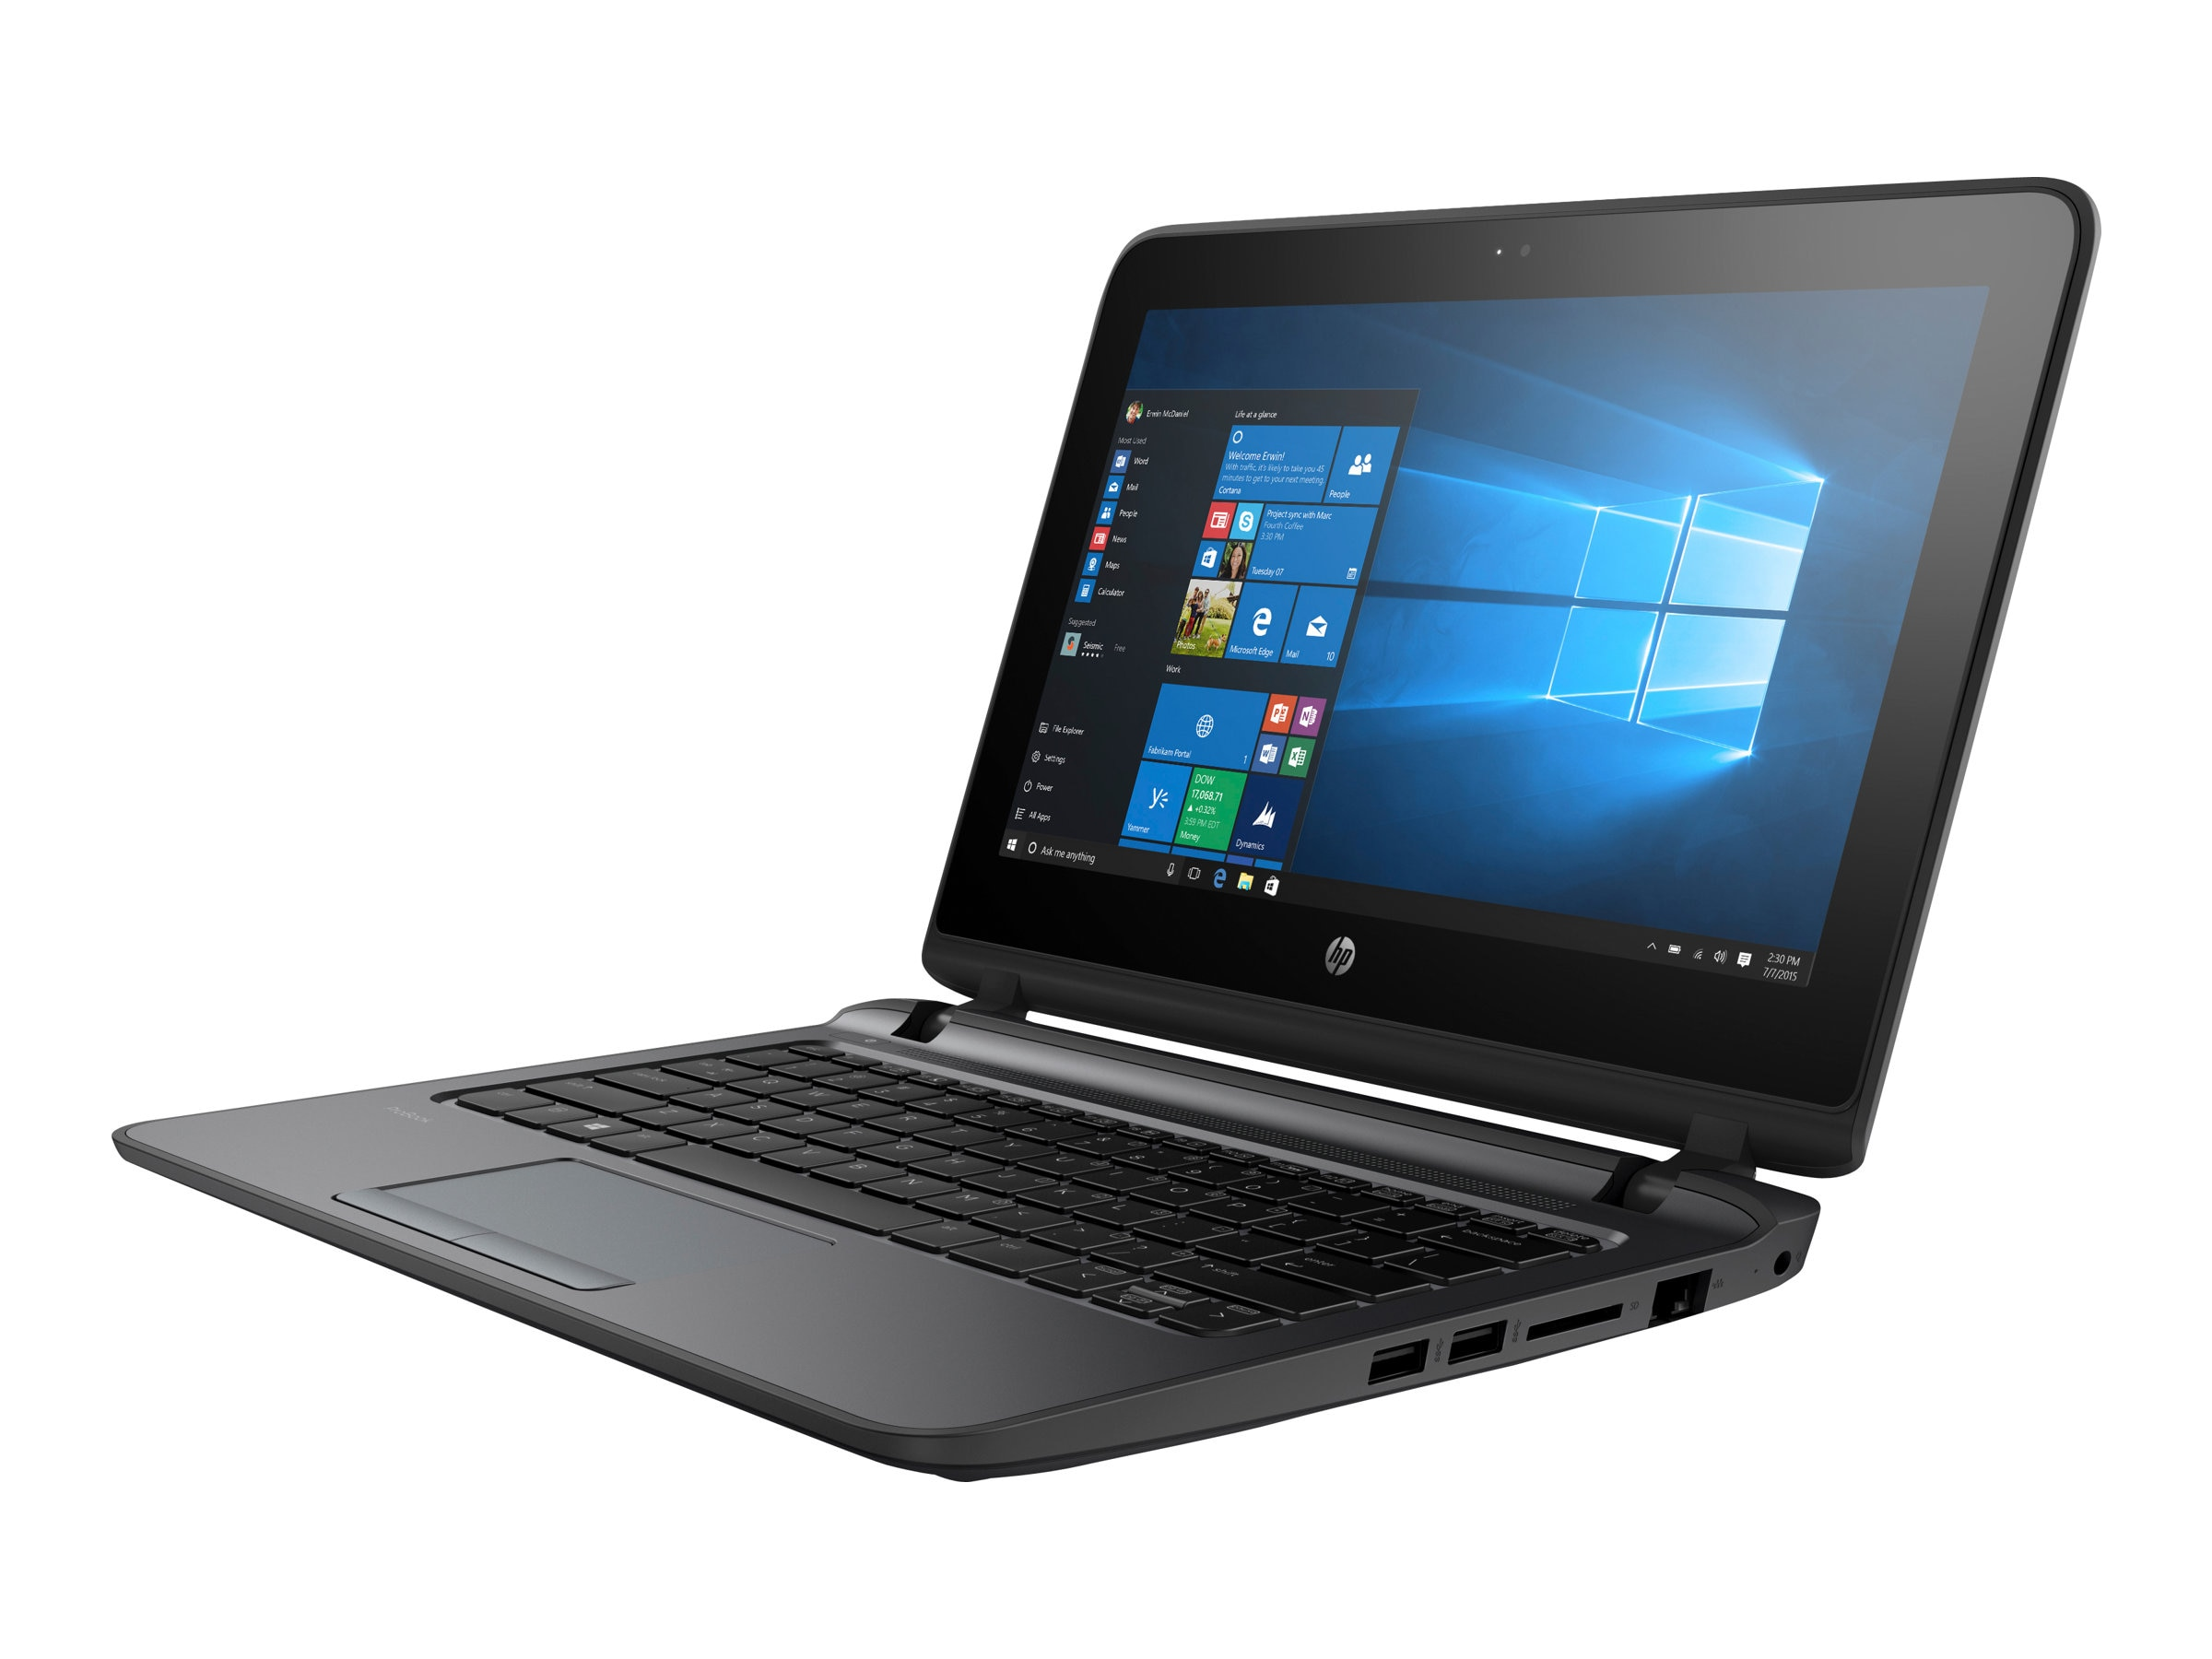 HP Shape the Future ProBook 11 EE G2 Celeron 3855U 1.6GHz 4GB 500GB ac BT WC 11.6 HD MT W7P64-W10P, V2W53UT#ABA